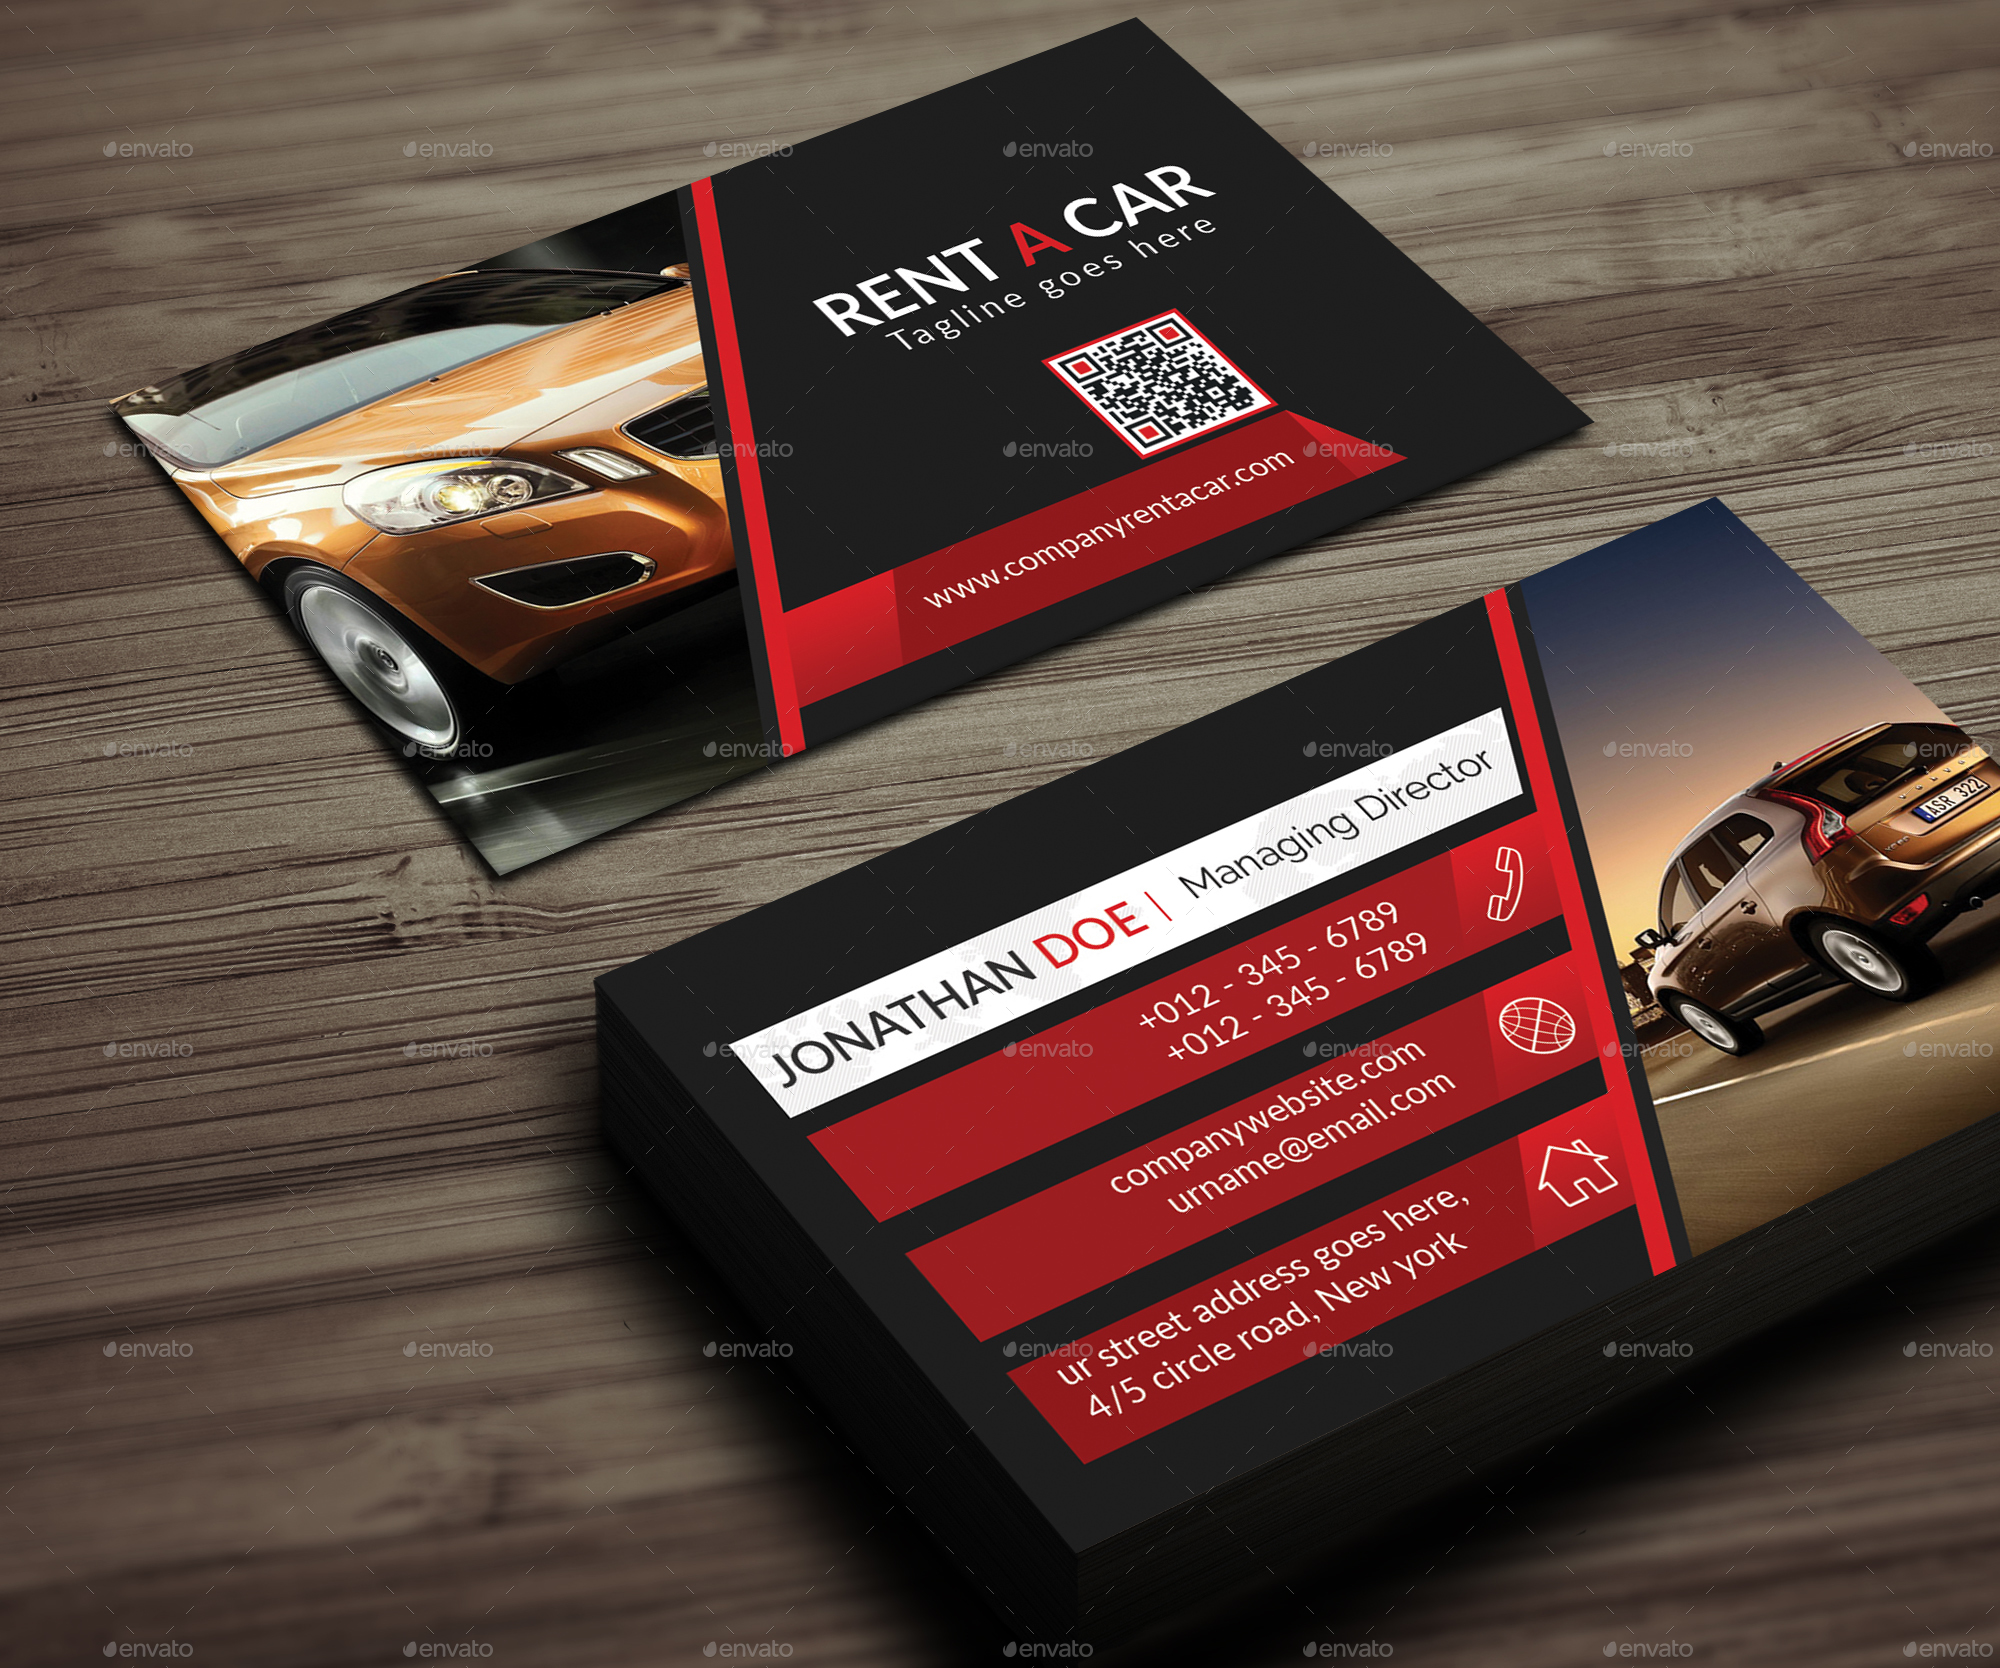 Rent a car business card by ancientego graphicriver rent a car business card corporate business cards 01previewg 02previewg 03previewg colourmoves